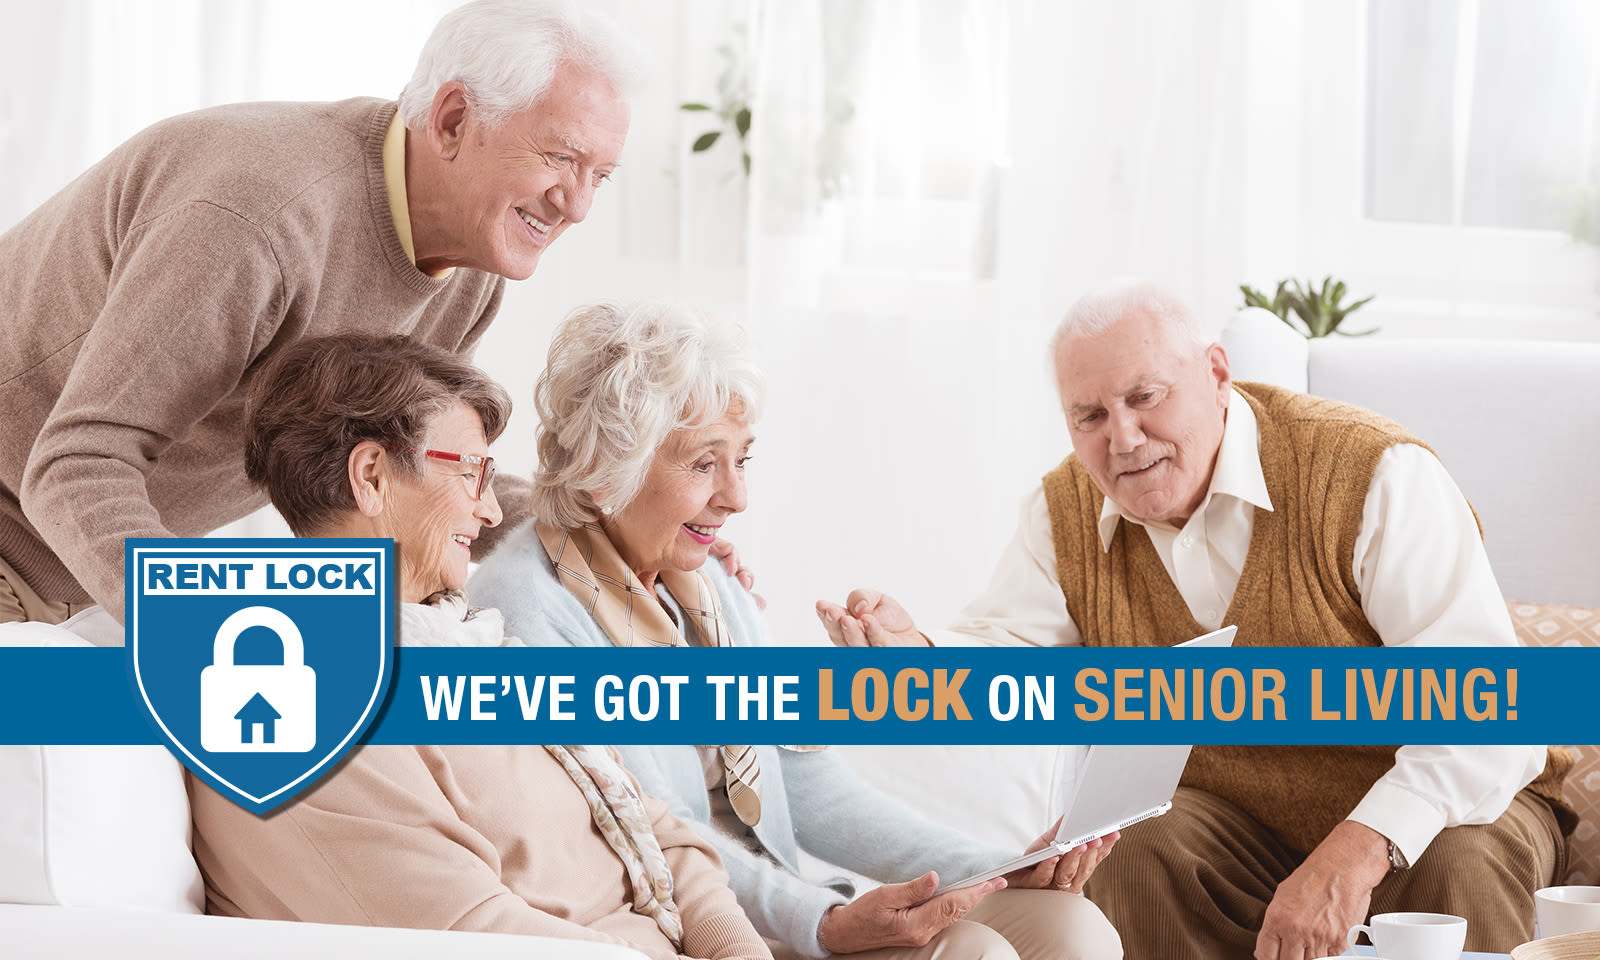 Chattanooga senior living has amazing care options